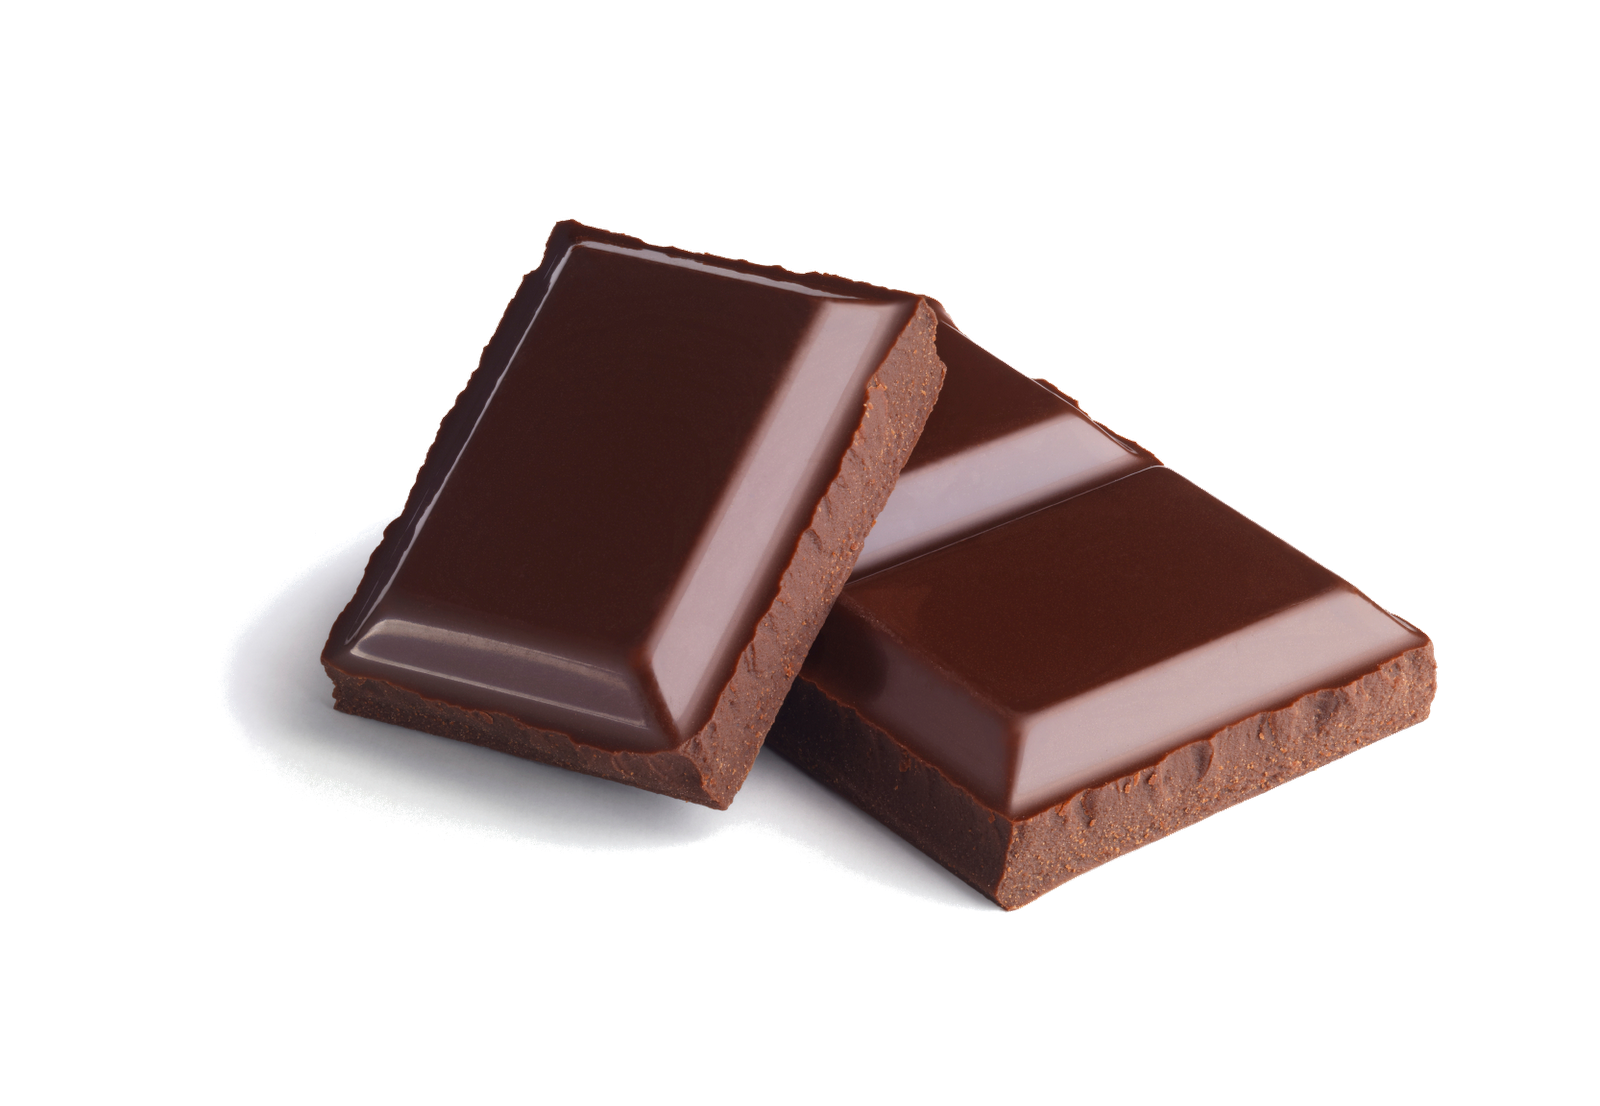 Chocolate PNG image - Ambrozijntje PNG